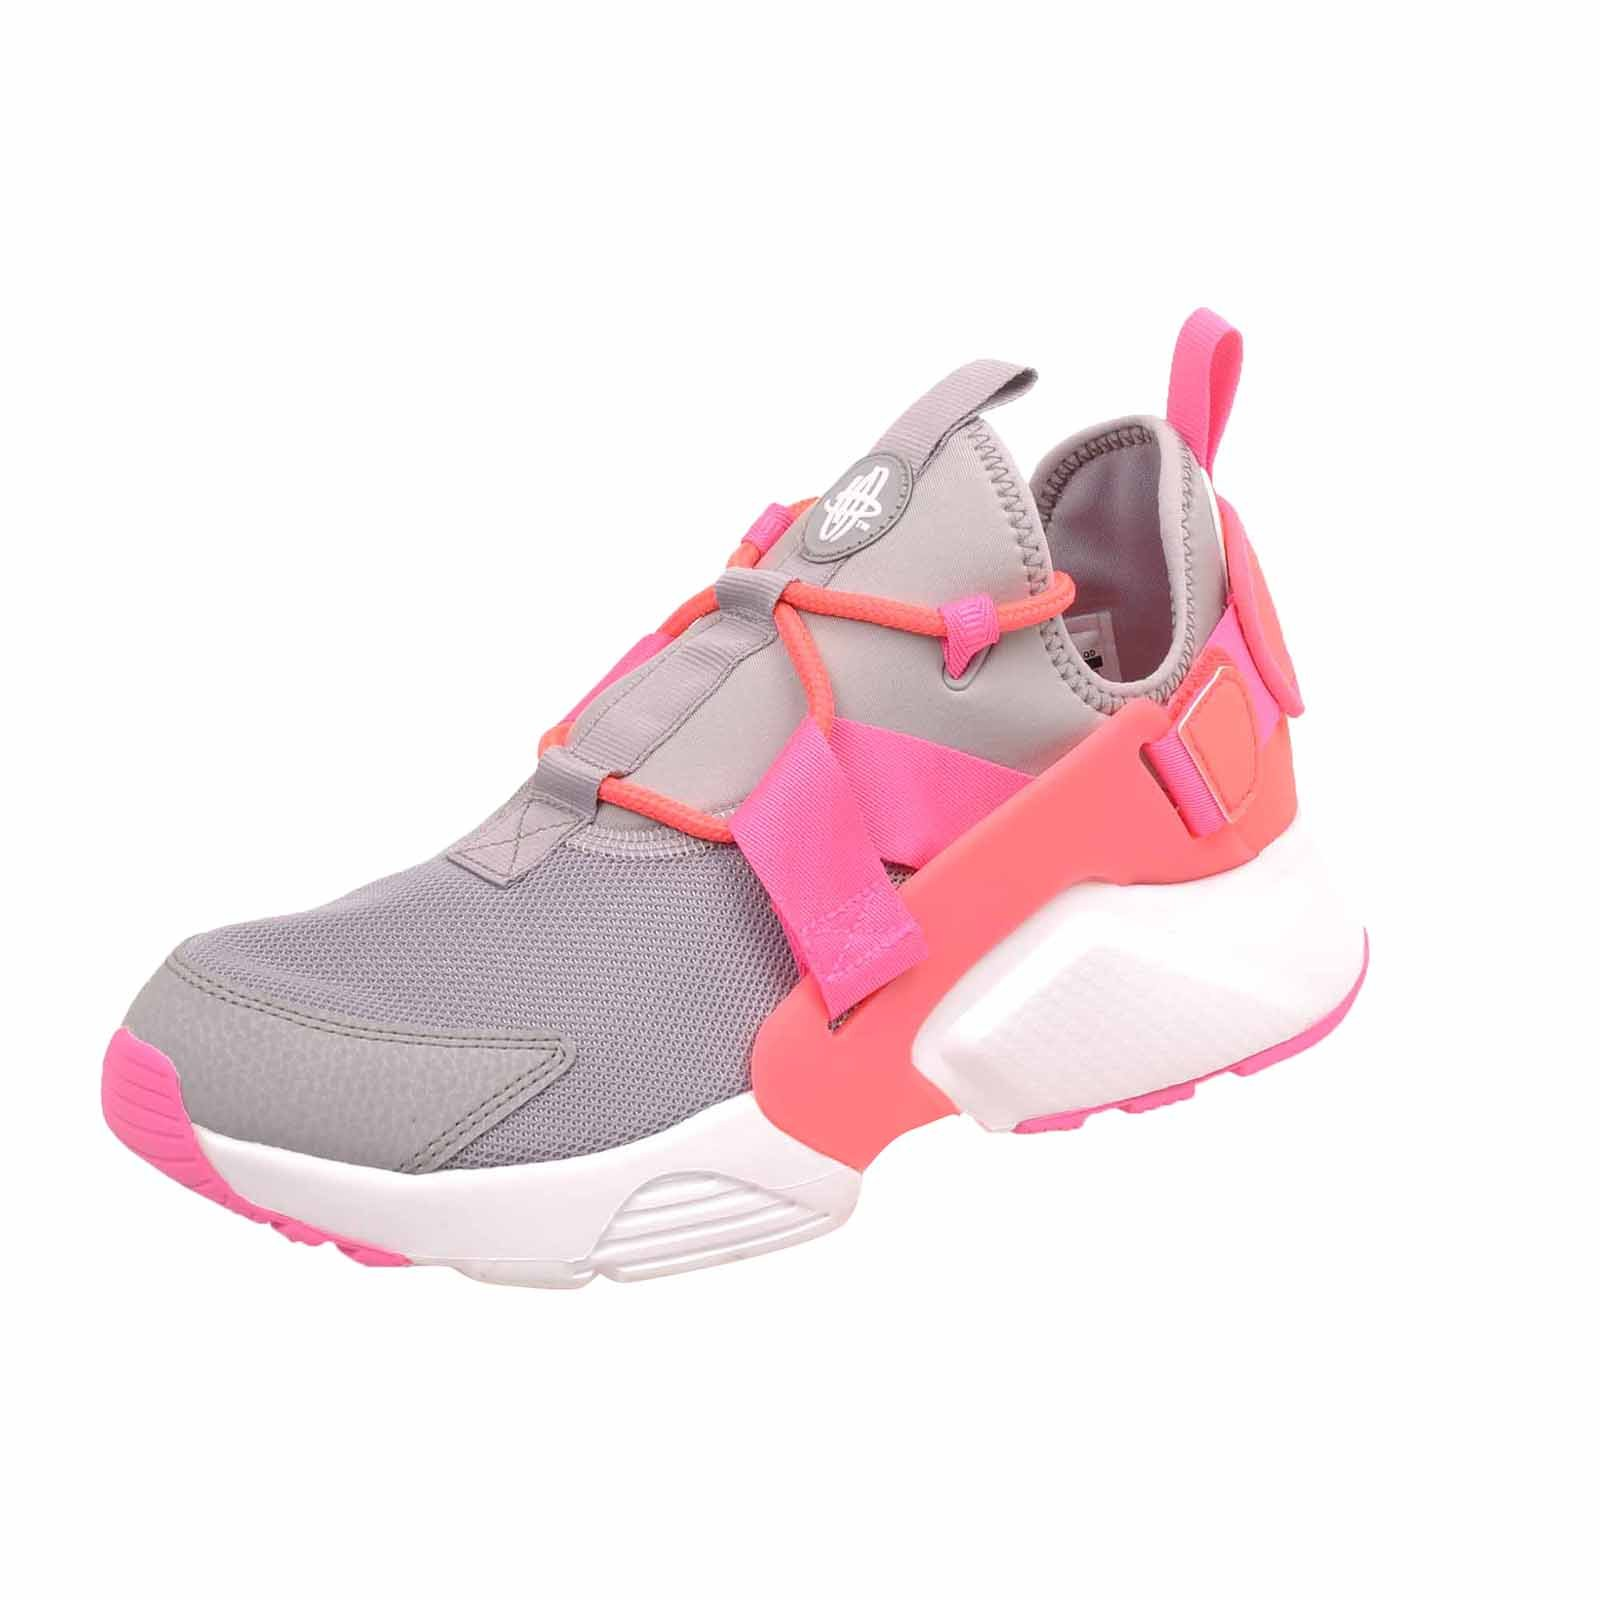 a4b2d1fa8f54 Galleon - Nike Women s Air Huarache City Low Running Shoes Atmosphere Grey  Hot Punch (8.5 B(M) US)